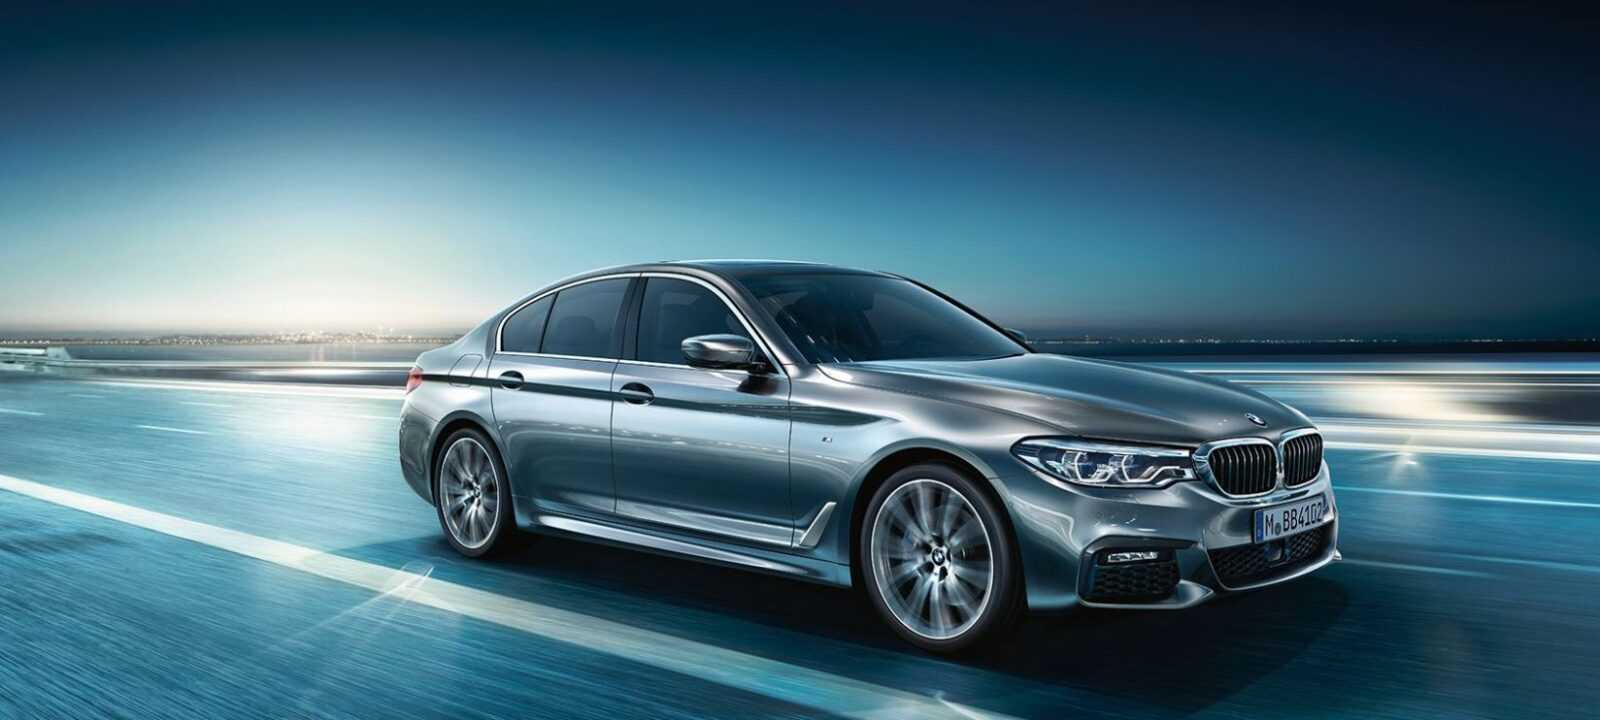 BMW-5series-sedan-ataglance-ts-XXL-desktop